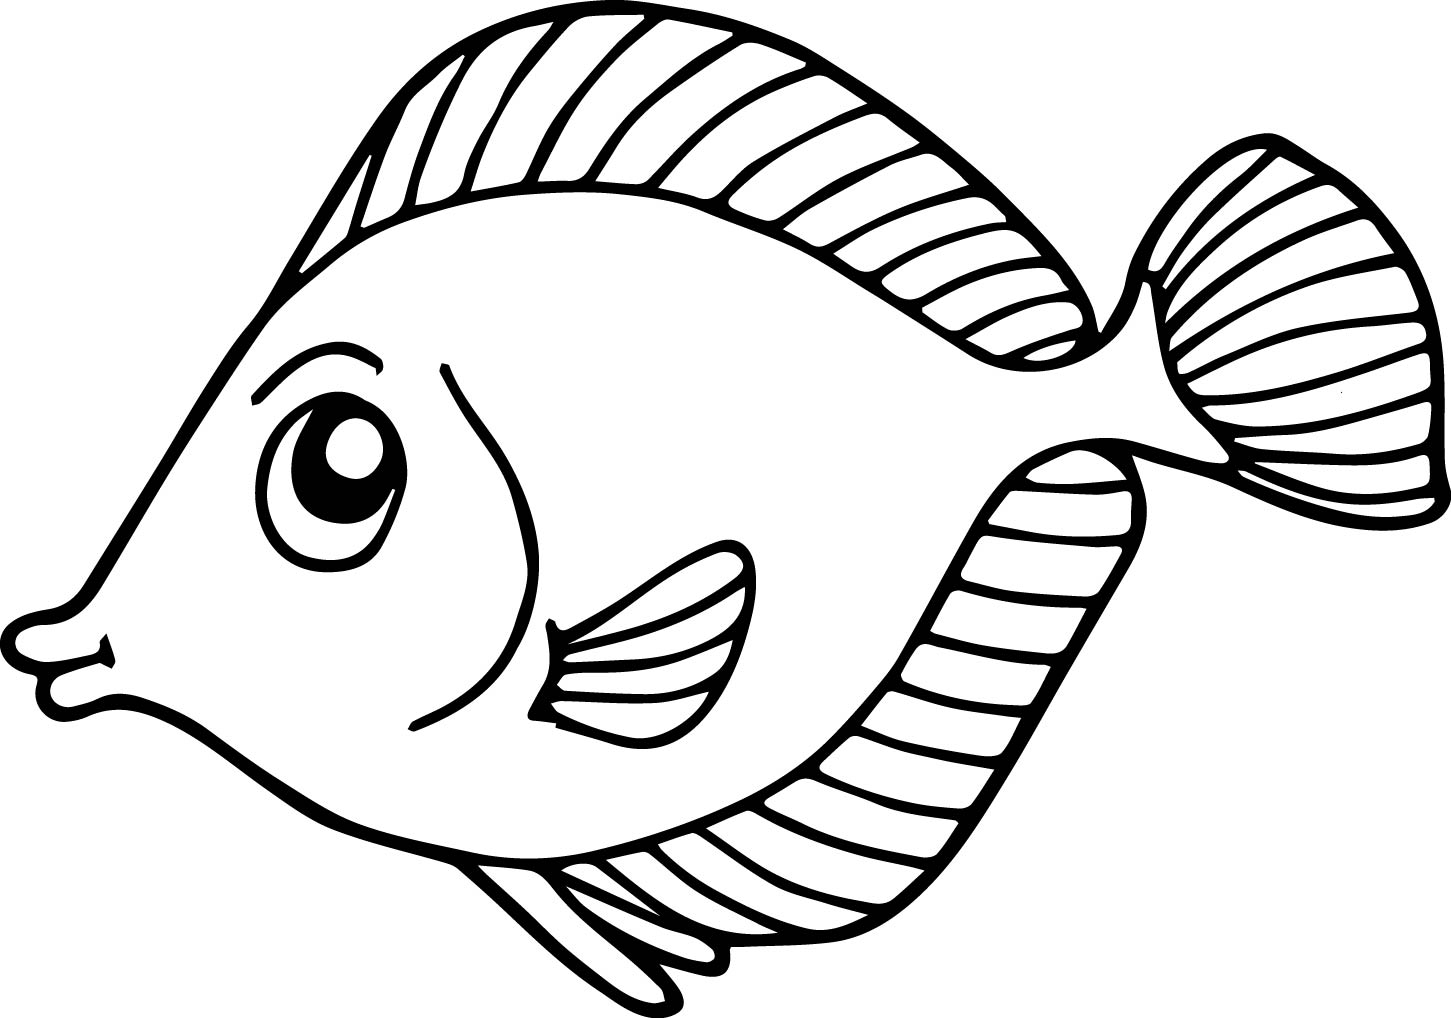 fish to color free printable fish coloring pages for kids cool2bkids to color fish 1 1